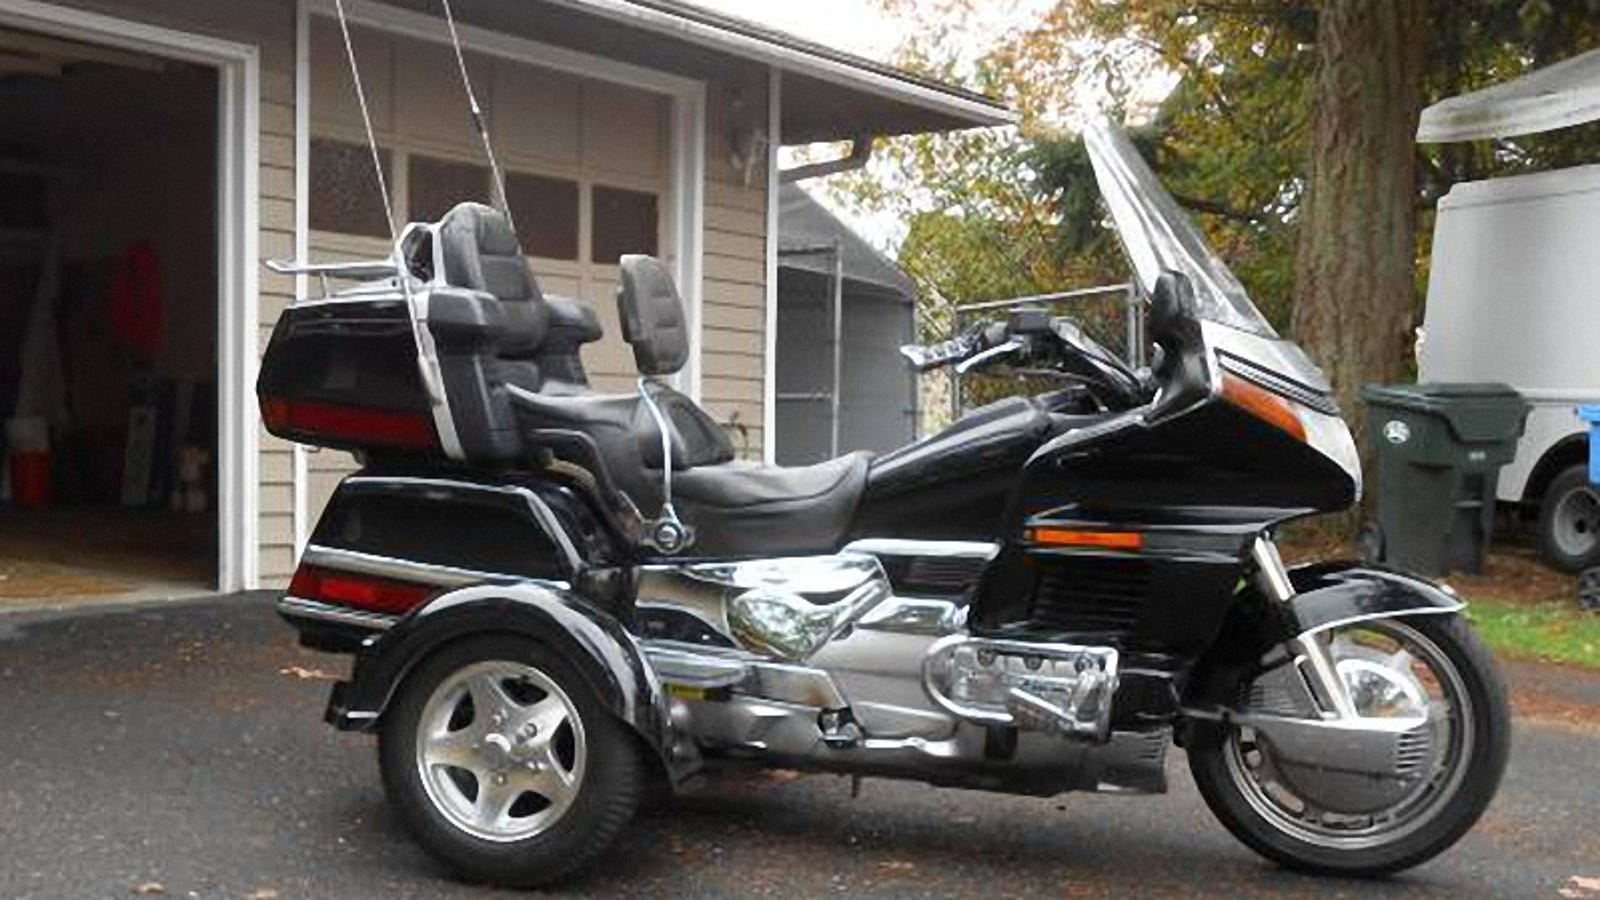 For $5,450, This 1993 Honda Gold Wing Trike Could Make You A